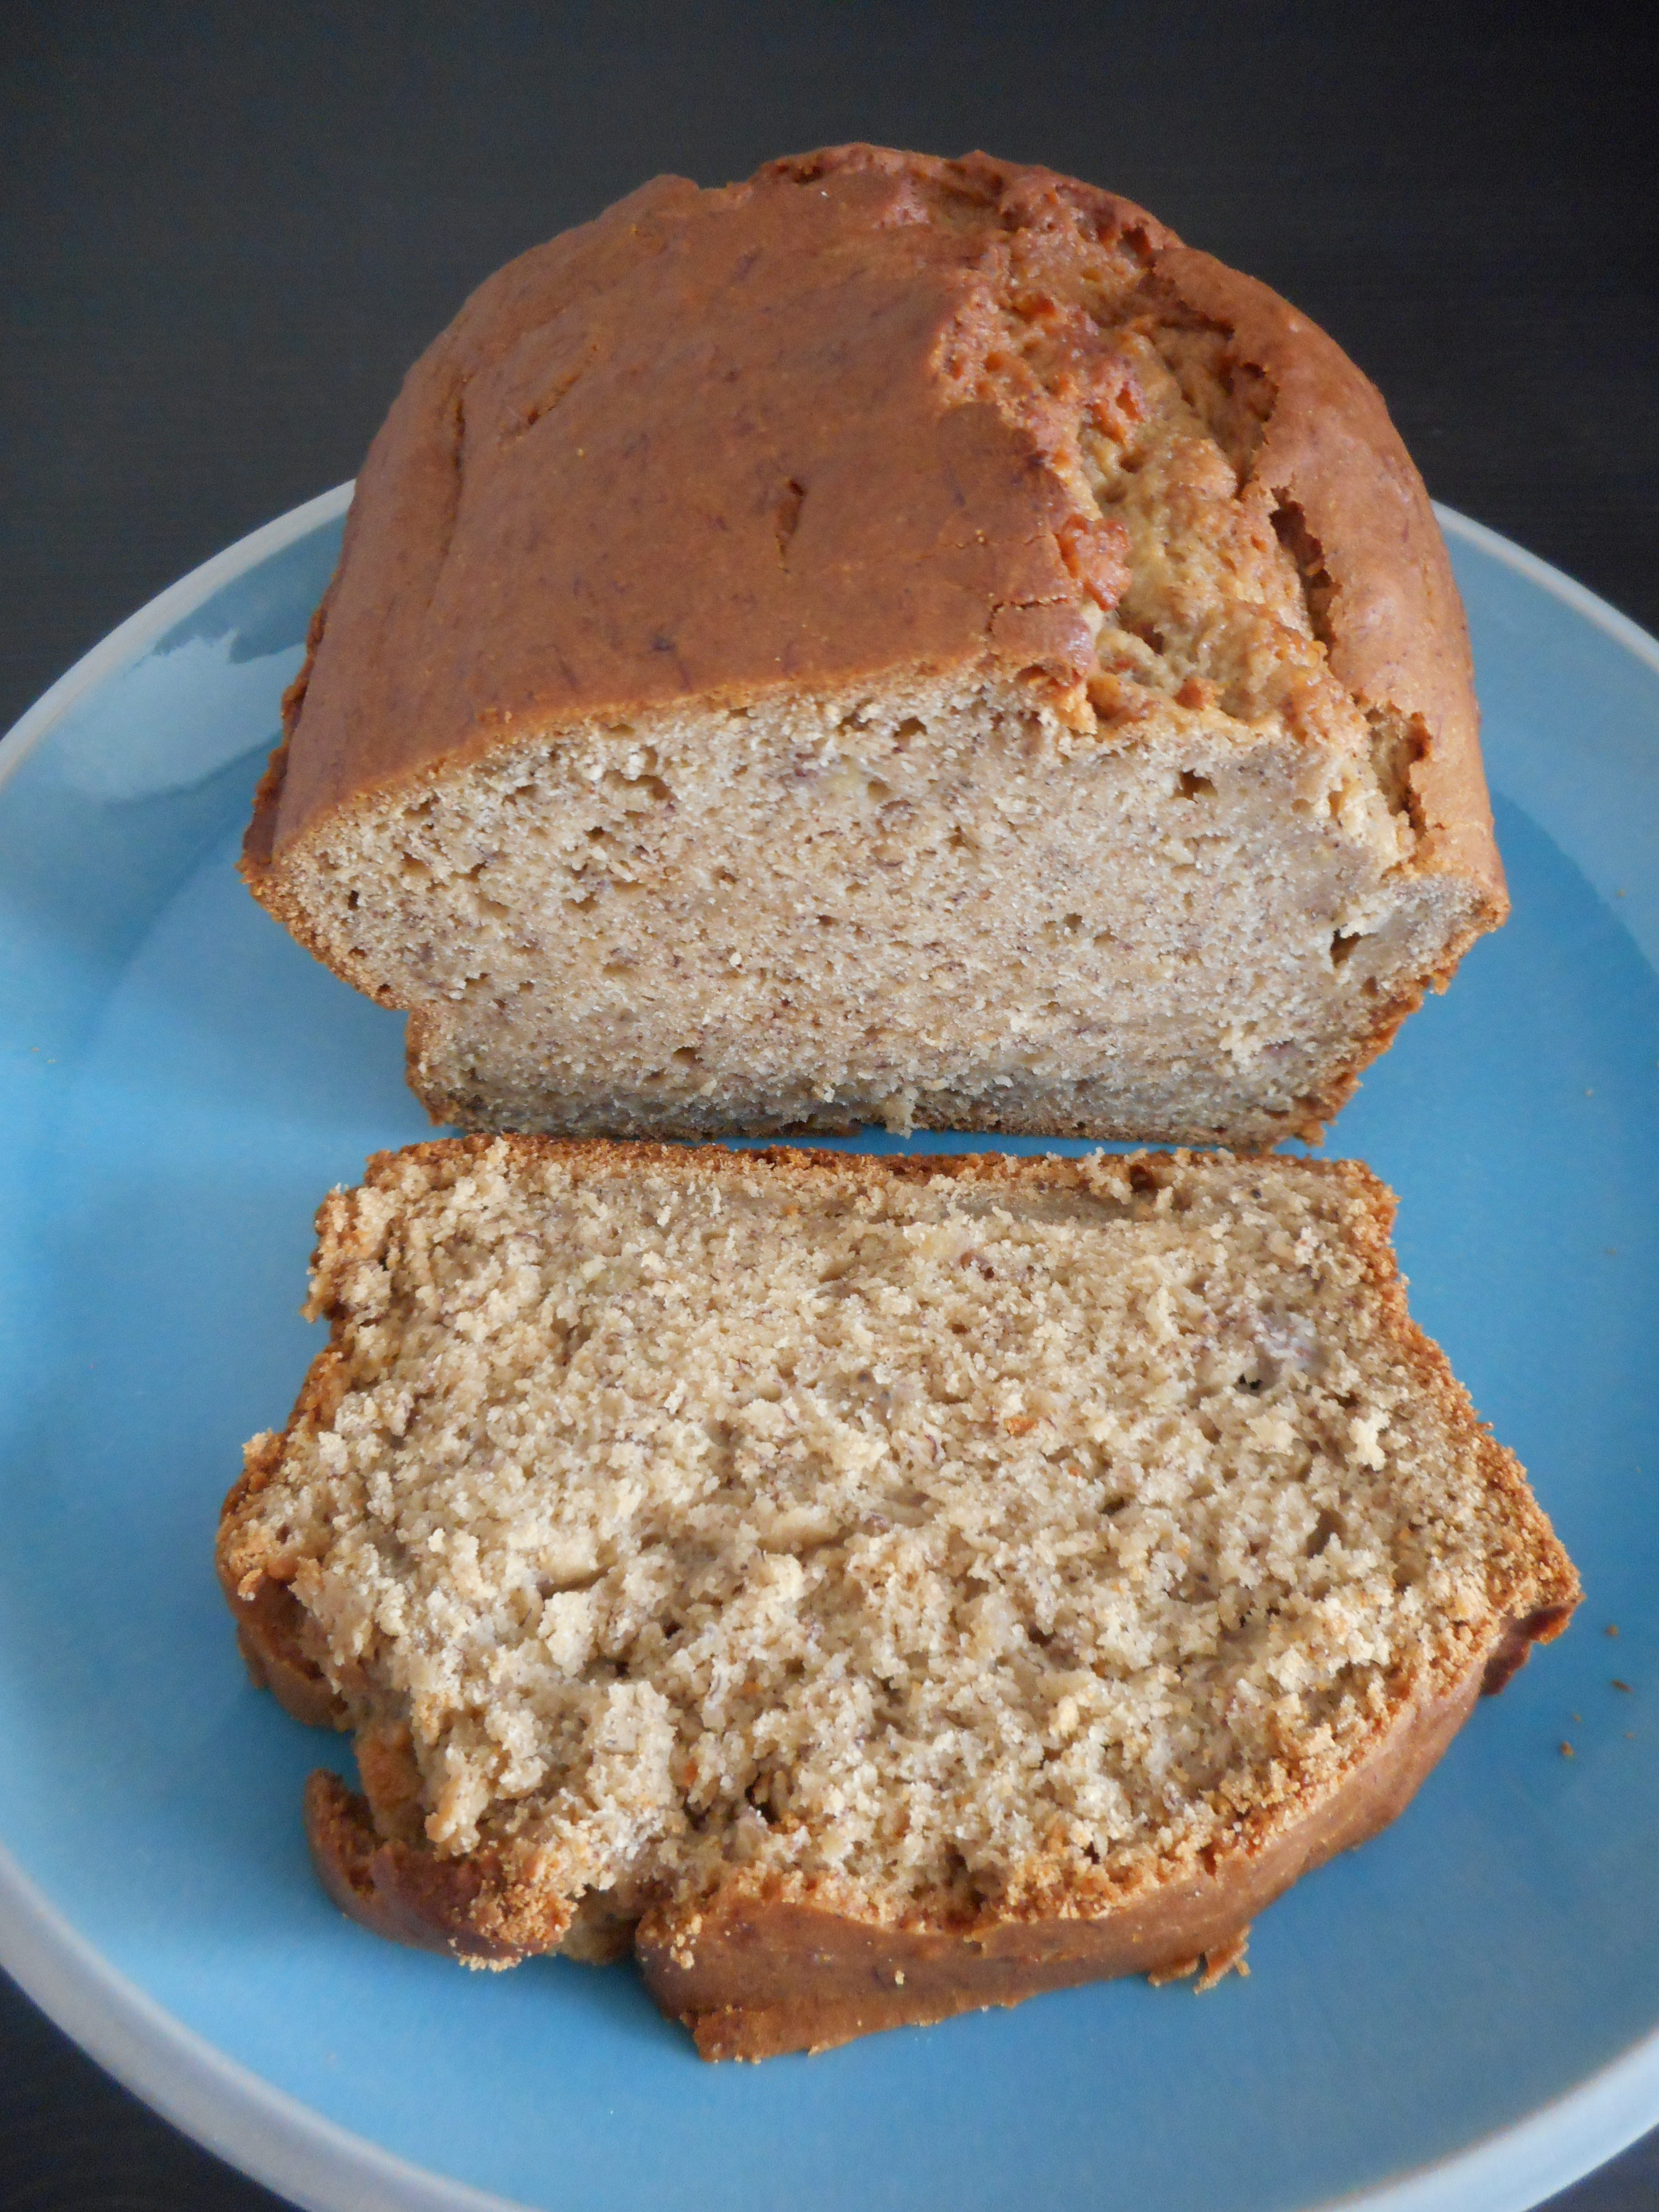 Lighter banana bread the whisking hour but in the case of banana bread i want it to banana bread already feels healthyi mean its got fruit in itwhy forumfinder Choice Image